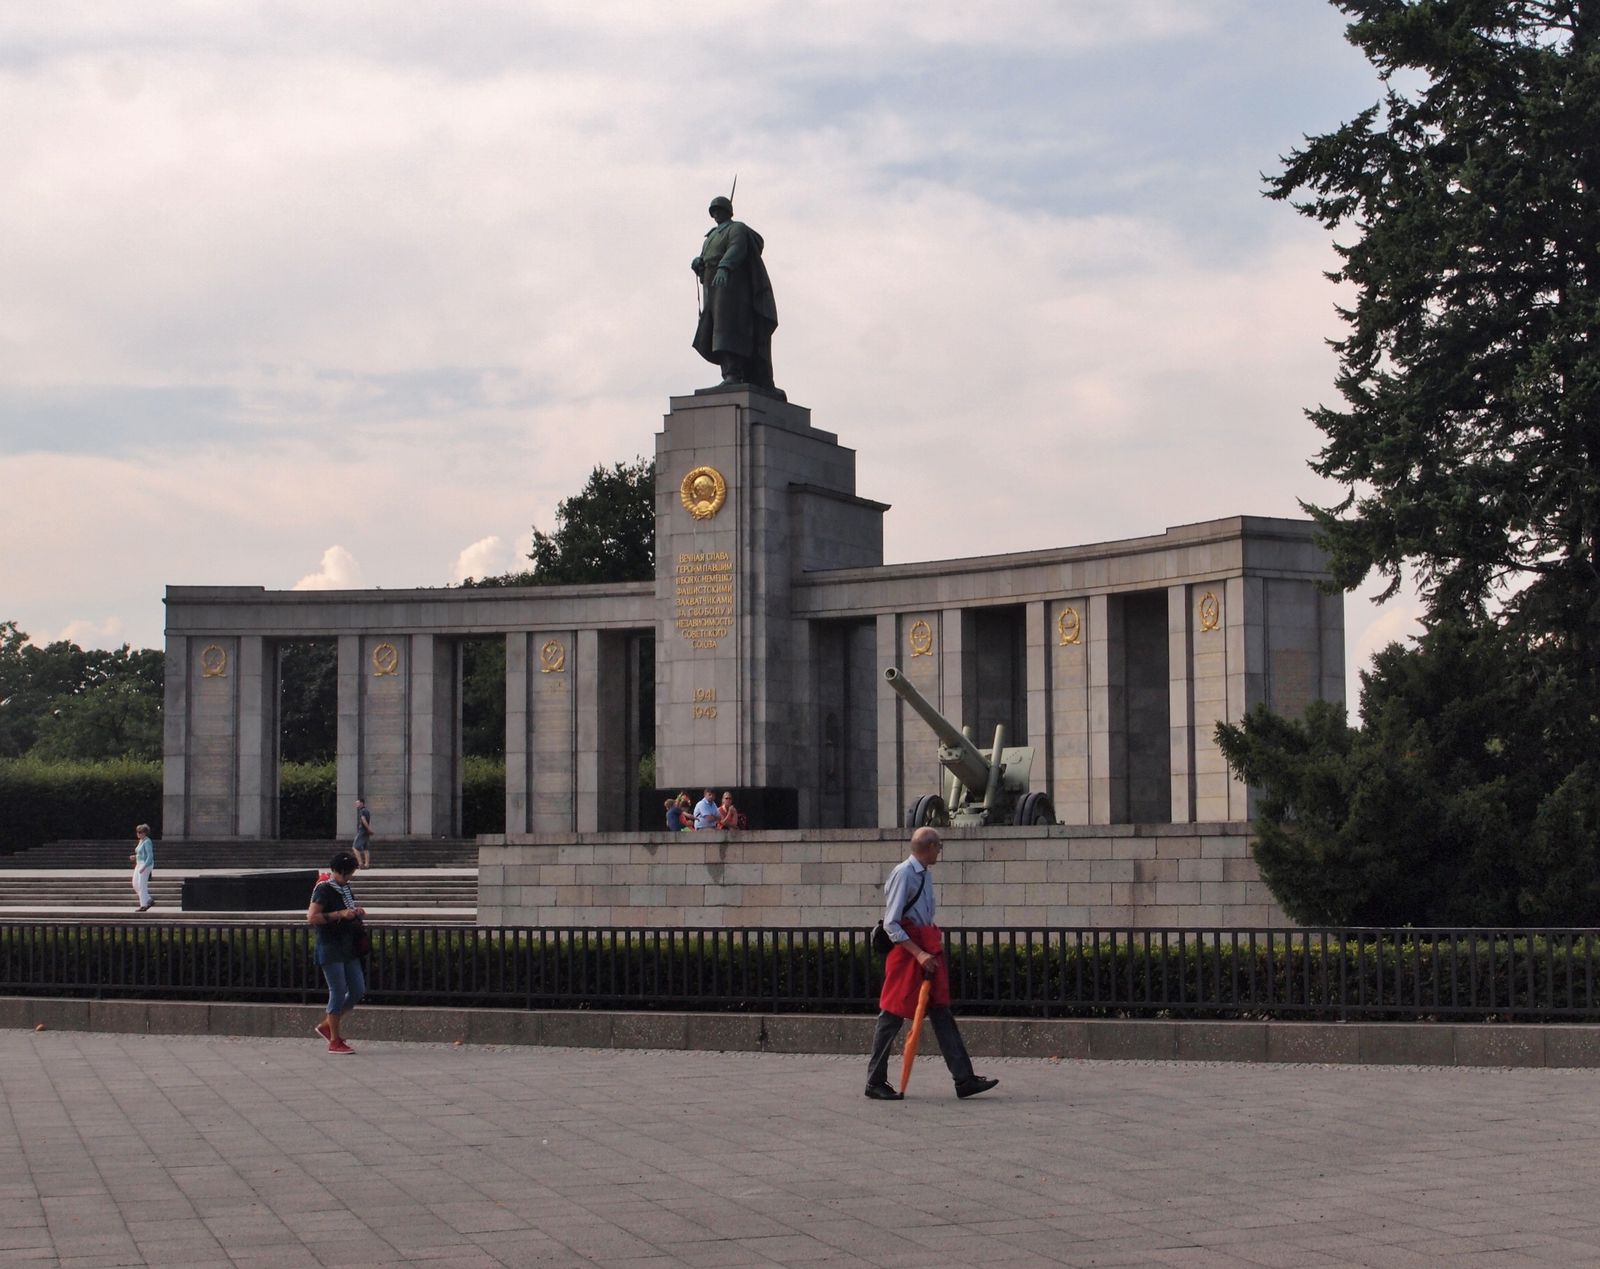 Ensemble-Memorial-sovietique-Tiegarten.JPG